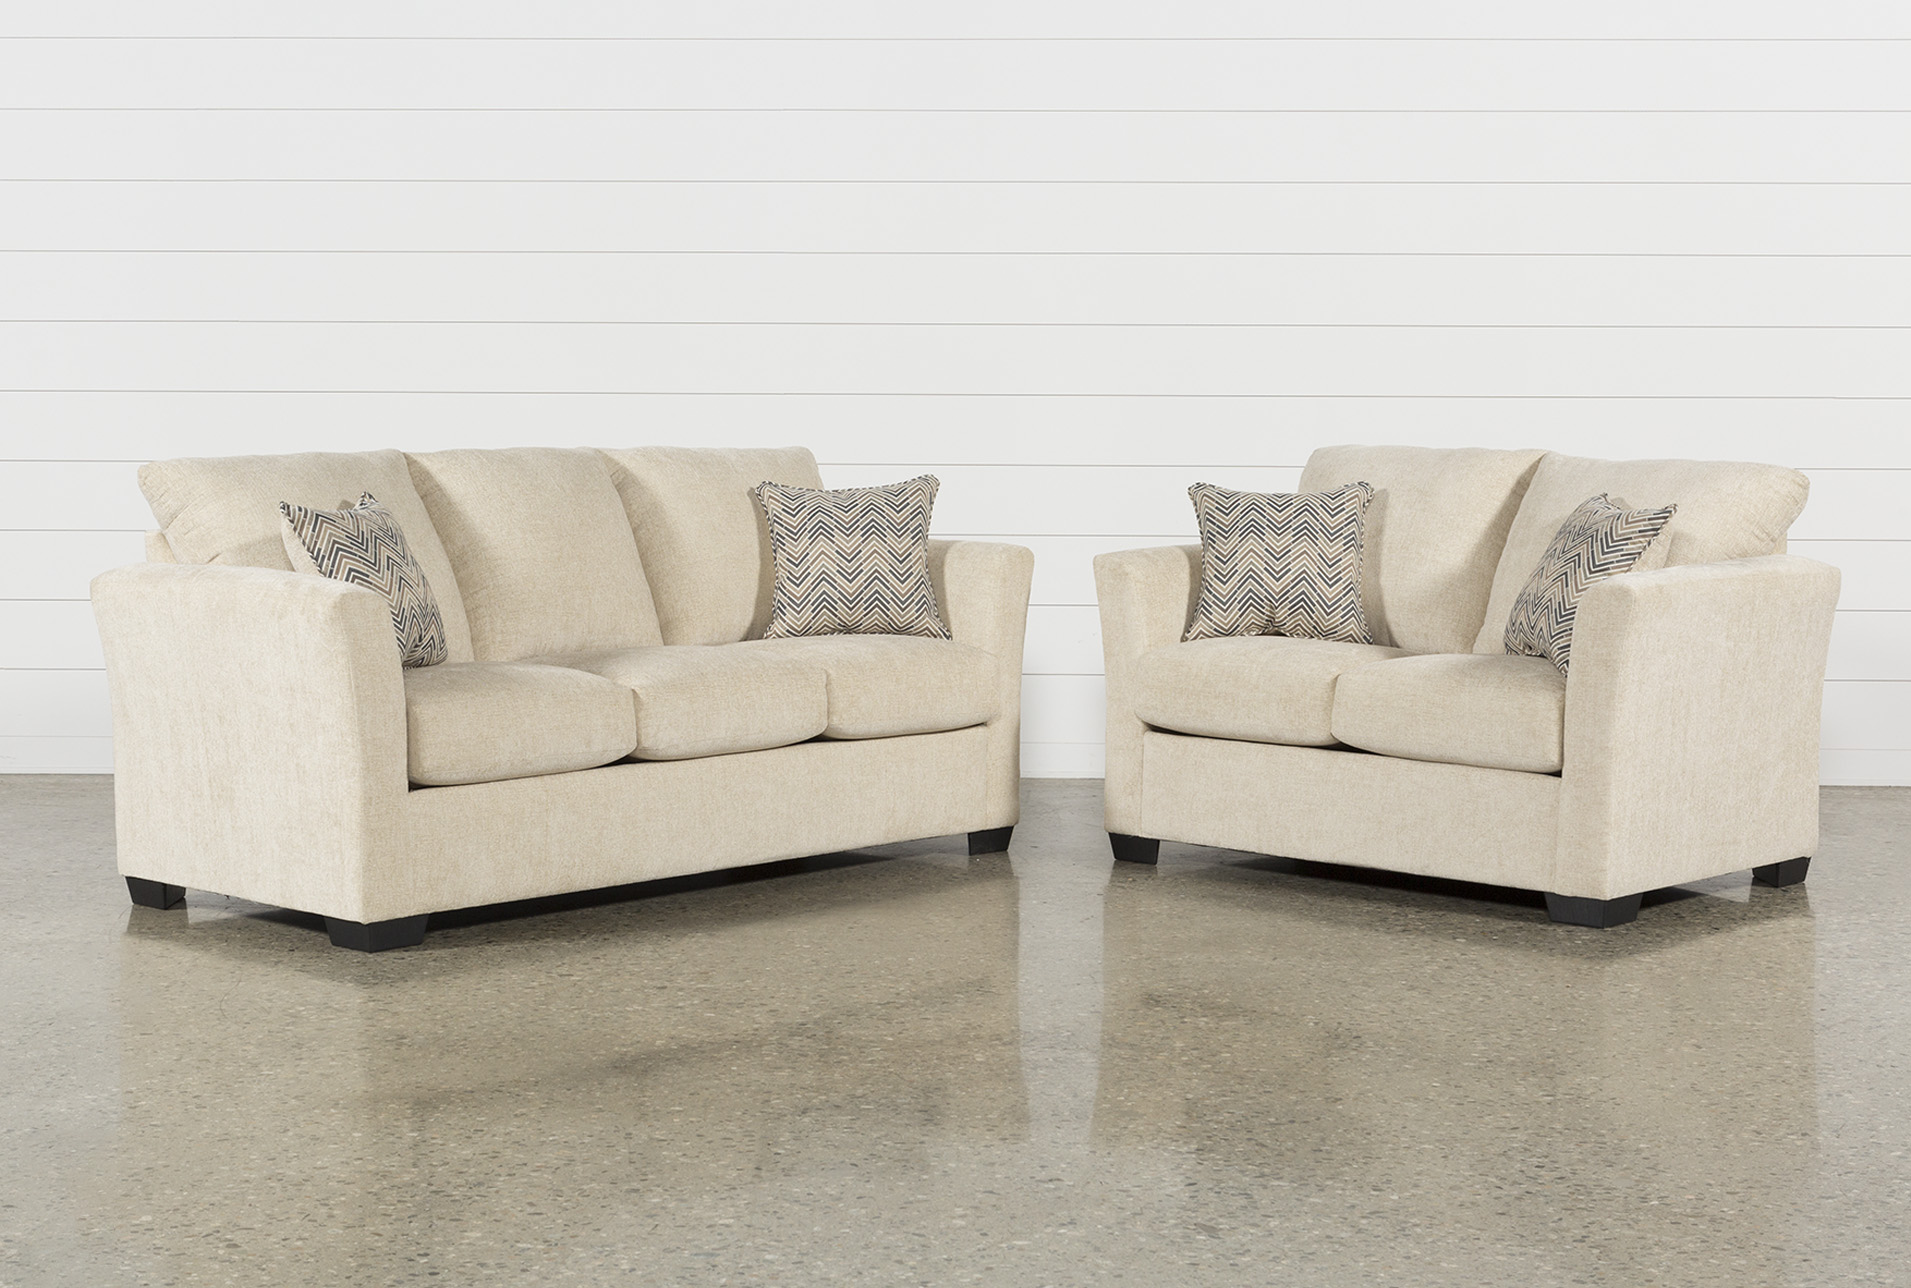 Ari 2 Piece Living Room Set (Qty: 1) Has Been Successfully Added To Your  Cart.